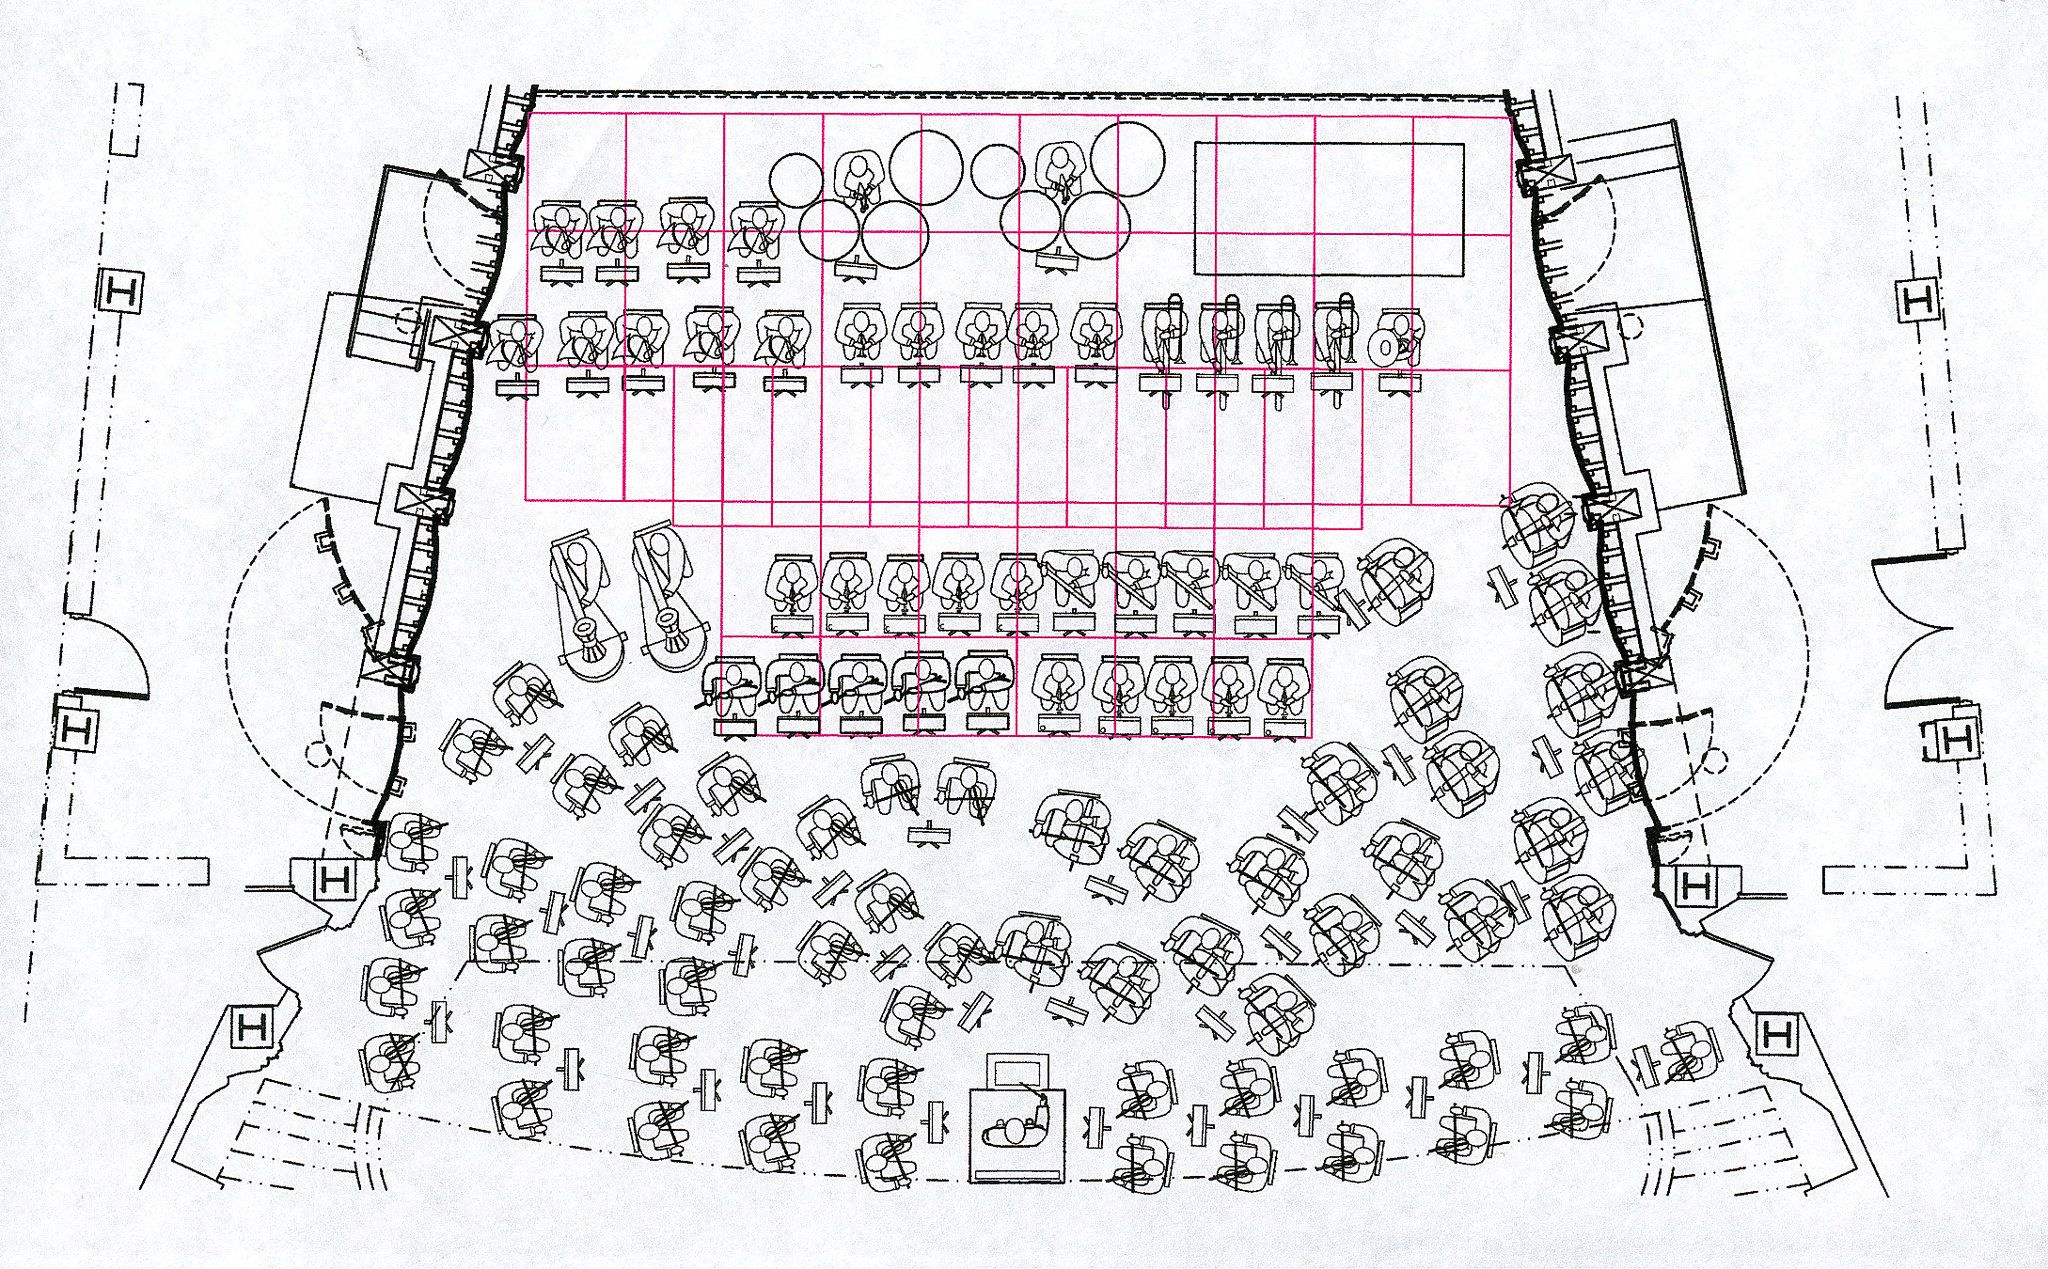 Severance Hall Stage SetUp Plan For A Performance Including